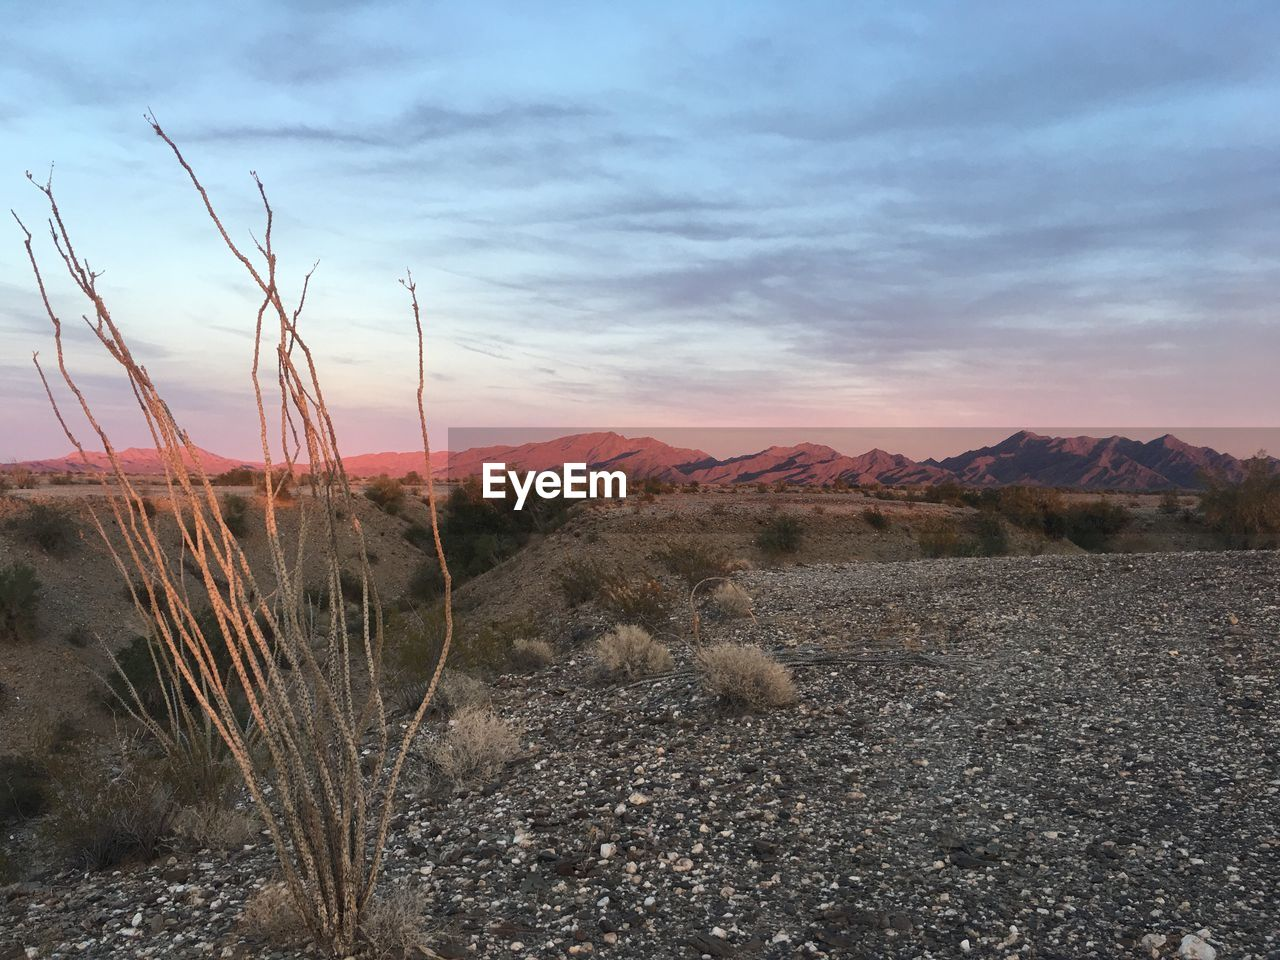 nature, beauty in nature, mountain, tranquility, tranquil scene, scenics, non-urban scene, sky, no people, outdoors, plant, landscape, cloud - sky, growth, sunset, arid climate, mountain range, day